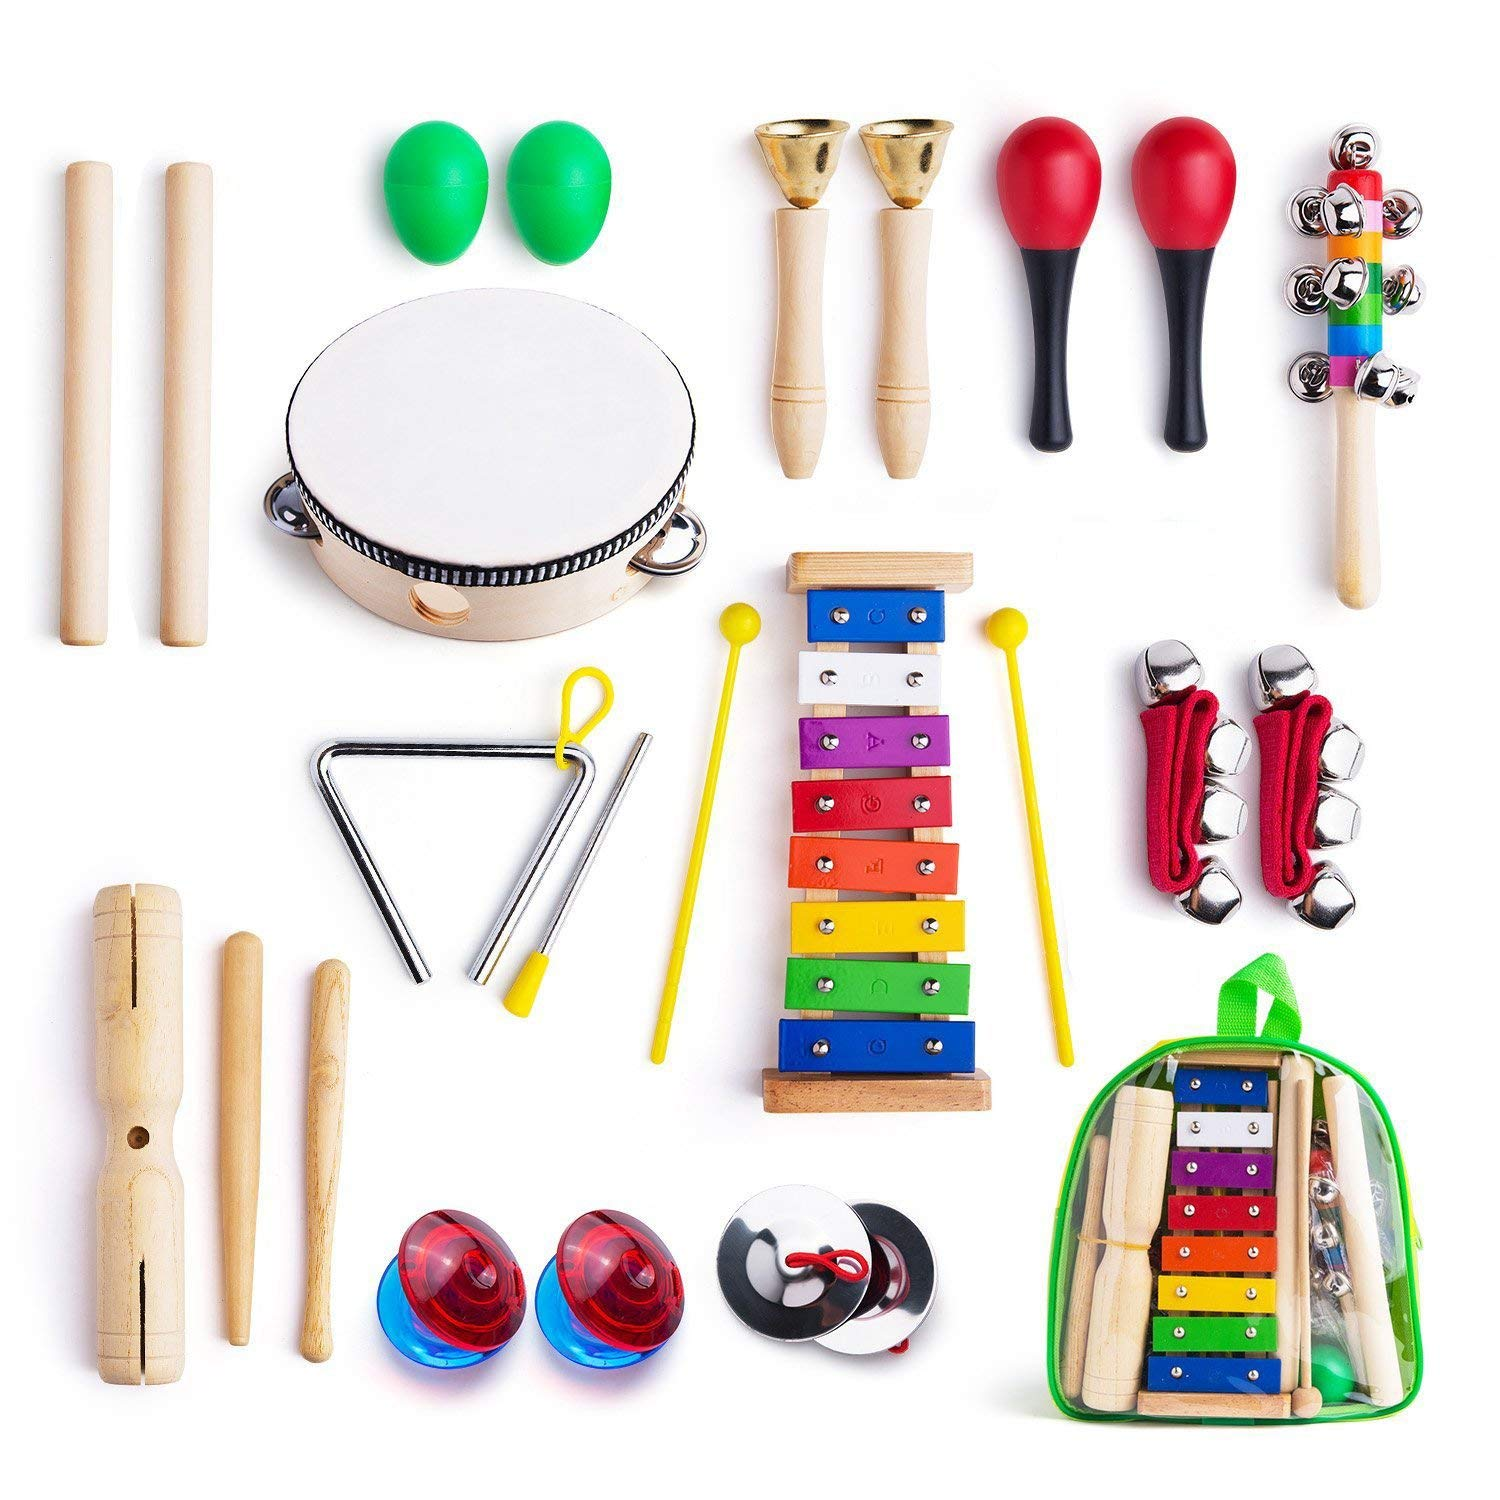 Musical Instruments for Toddler with Carry Bag,12 in 1 Music Percussion Toy Set for Kids with Xylophone,Rhythm Band,TambourinMusical Instruments for Toddler with Carry Bag,12 in 1 Music Percussion Toy Set for Kids with Xylophone,Rhythm Band,Tambourin